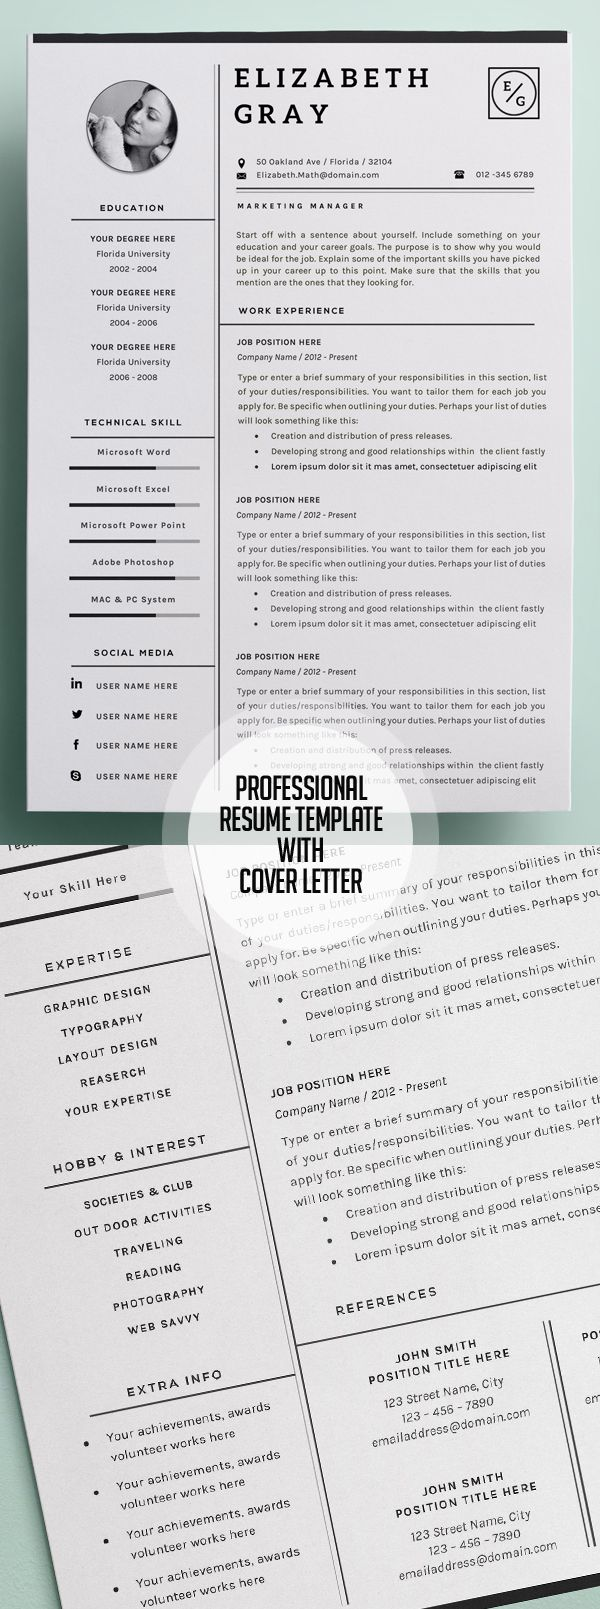 Opposenewapstandardsus  Mesmerizing  Resume Ideas On Pinterest  Resume Resume Templates And  With Lovely Professional And Modern Resume Template With Page Cover Cvtemplate With Agreeable Objectives For Resume Also Resume Examples For Jobs In Addition Resume Design And Best Resume Template As Well As Objective Resume Additionally Retail Resume From Pinterestcom With Opposenewapstandardsus  Lovely  Resume Ideas On Pinterest  Resume Resume Templates And  With Agreeable Professional And Modern Resume Template With Page Cover Cvtemplate And Mesmerizing Objectives For Resume Also Resume Examples For Jobs In Addition Resume Design From Pinterestcom